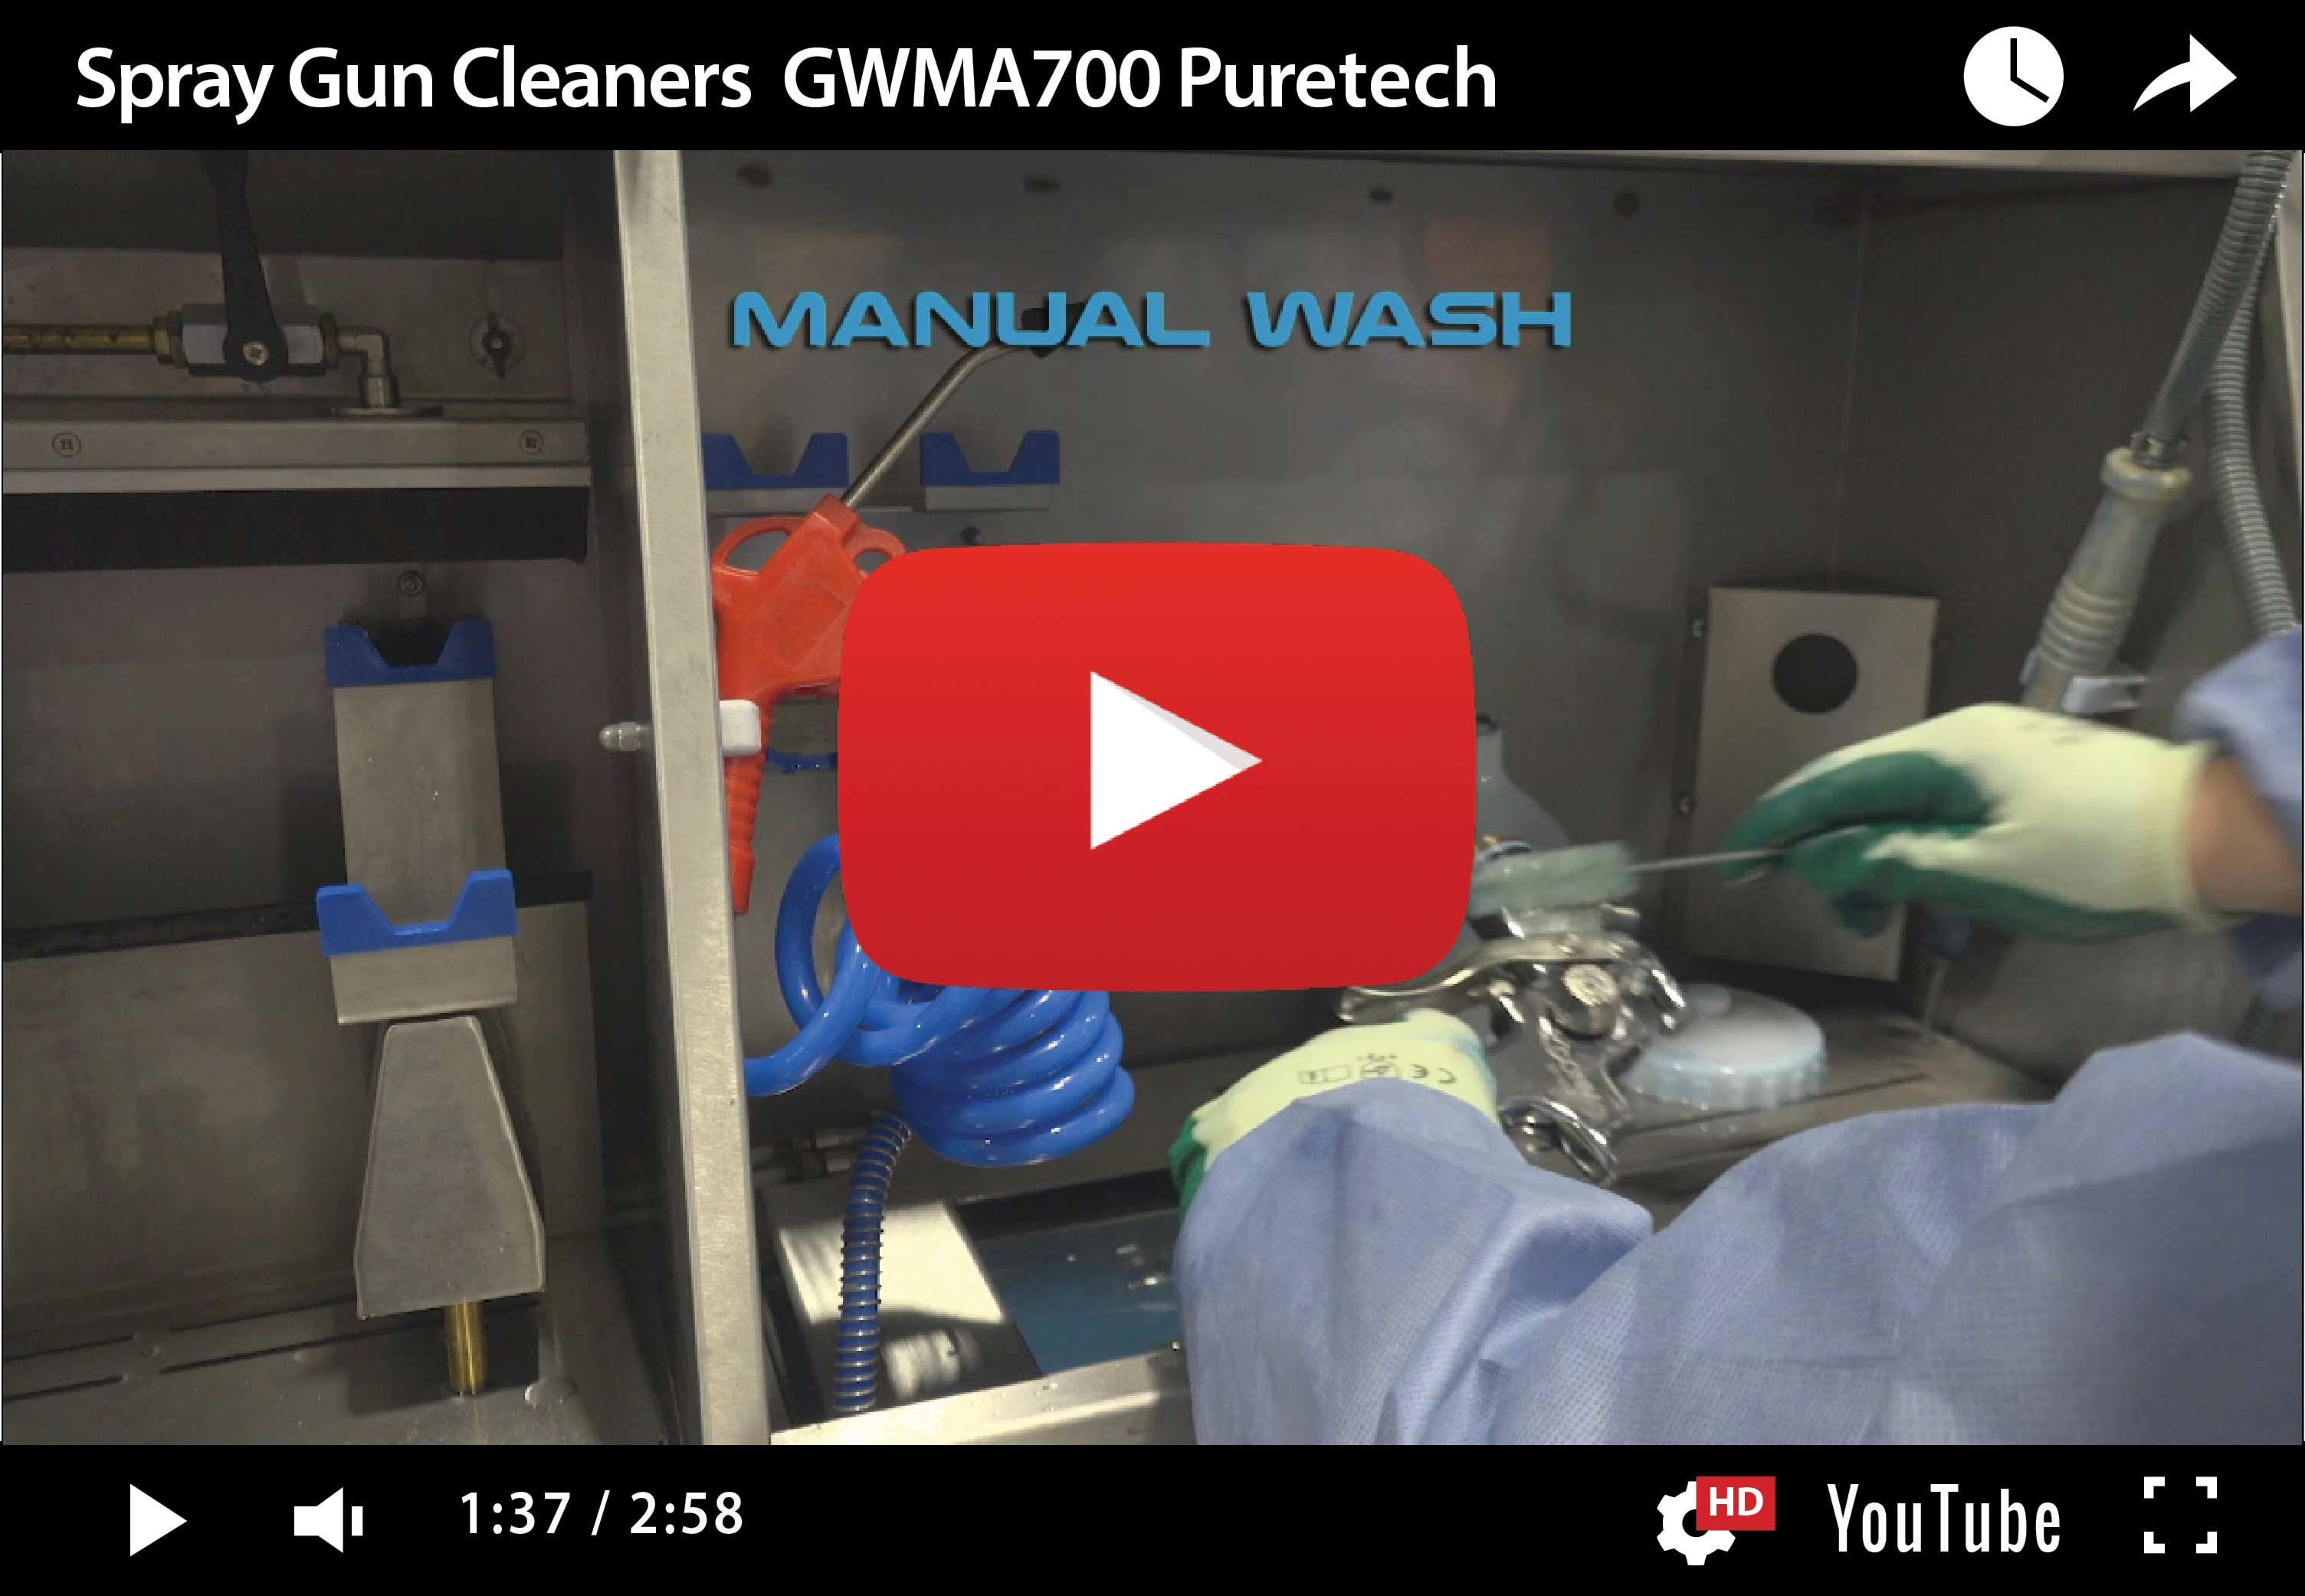 GMWA 700 Puretech – Hybrid Spray Gun Cleaner